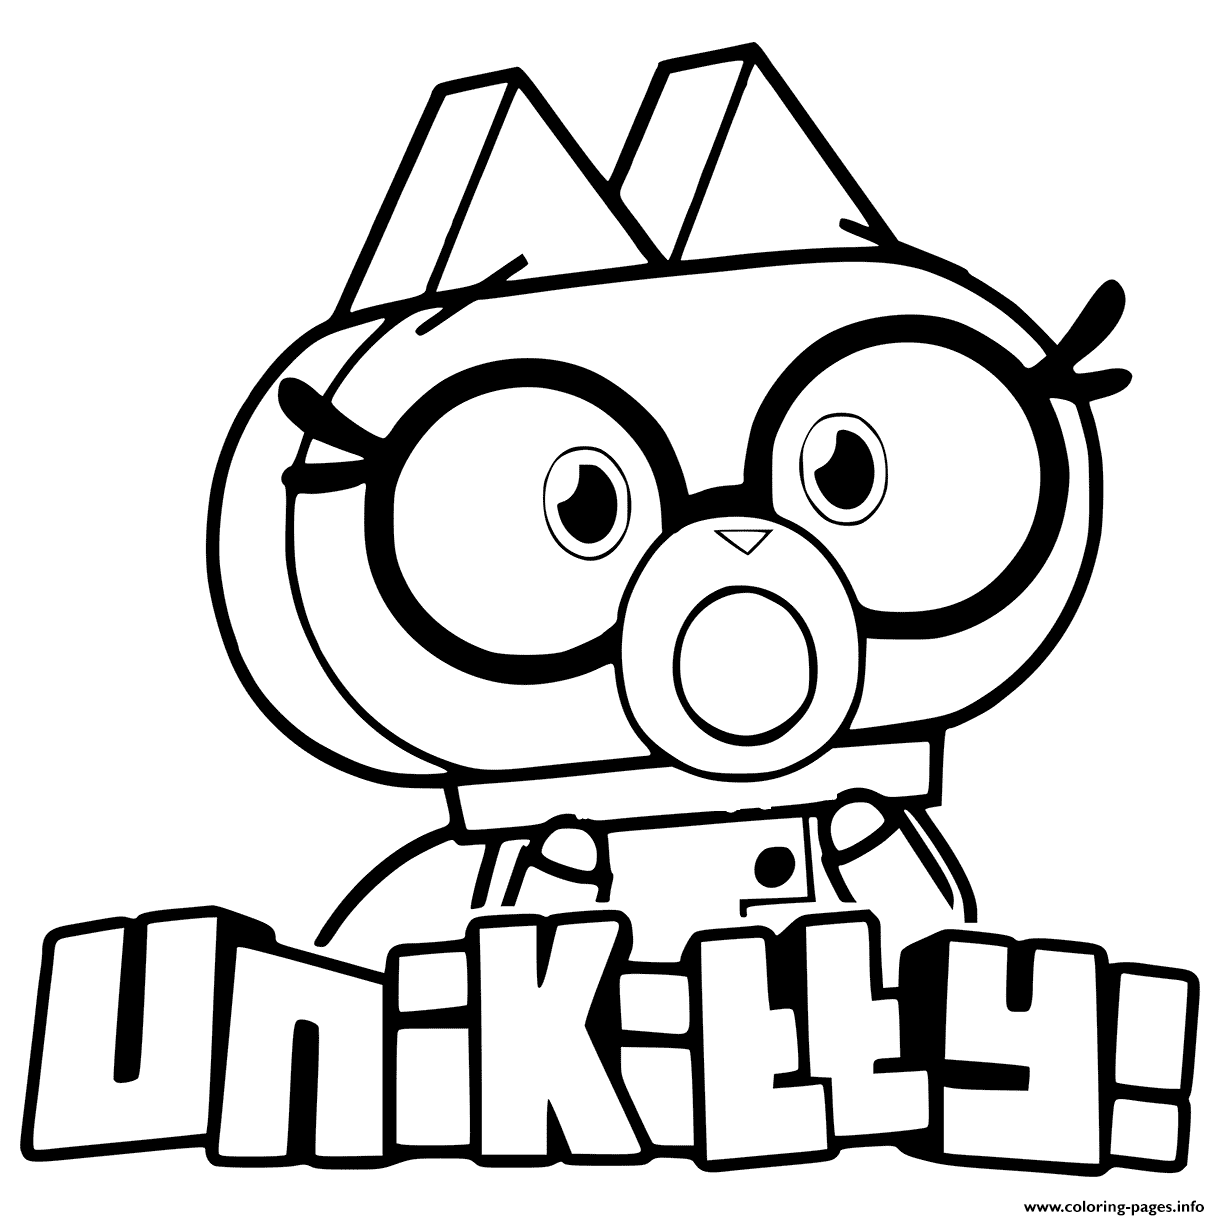 Dr fox from unikitty coloring pages printable